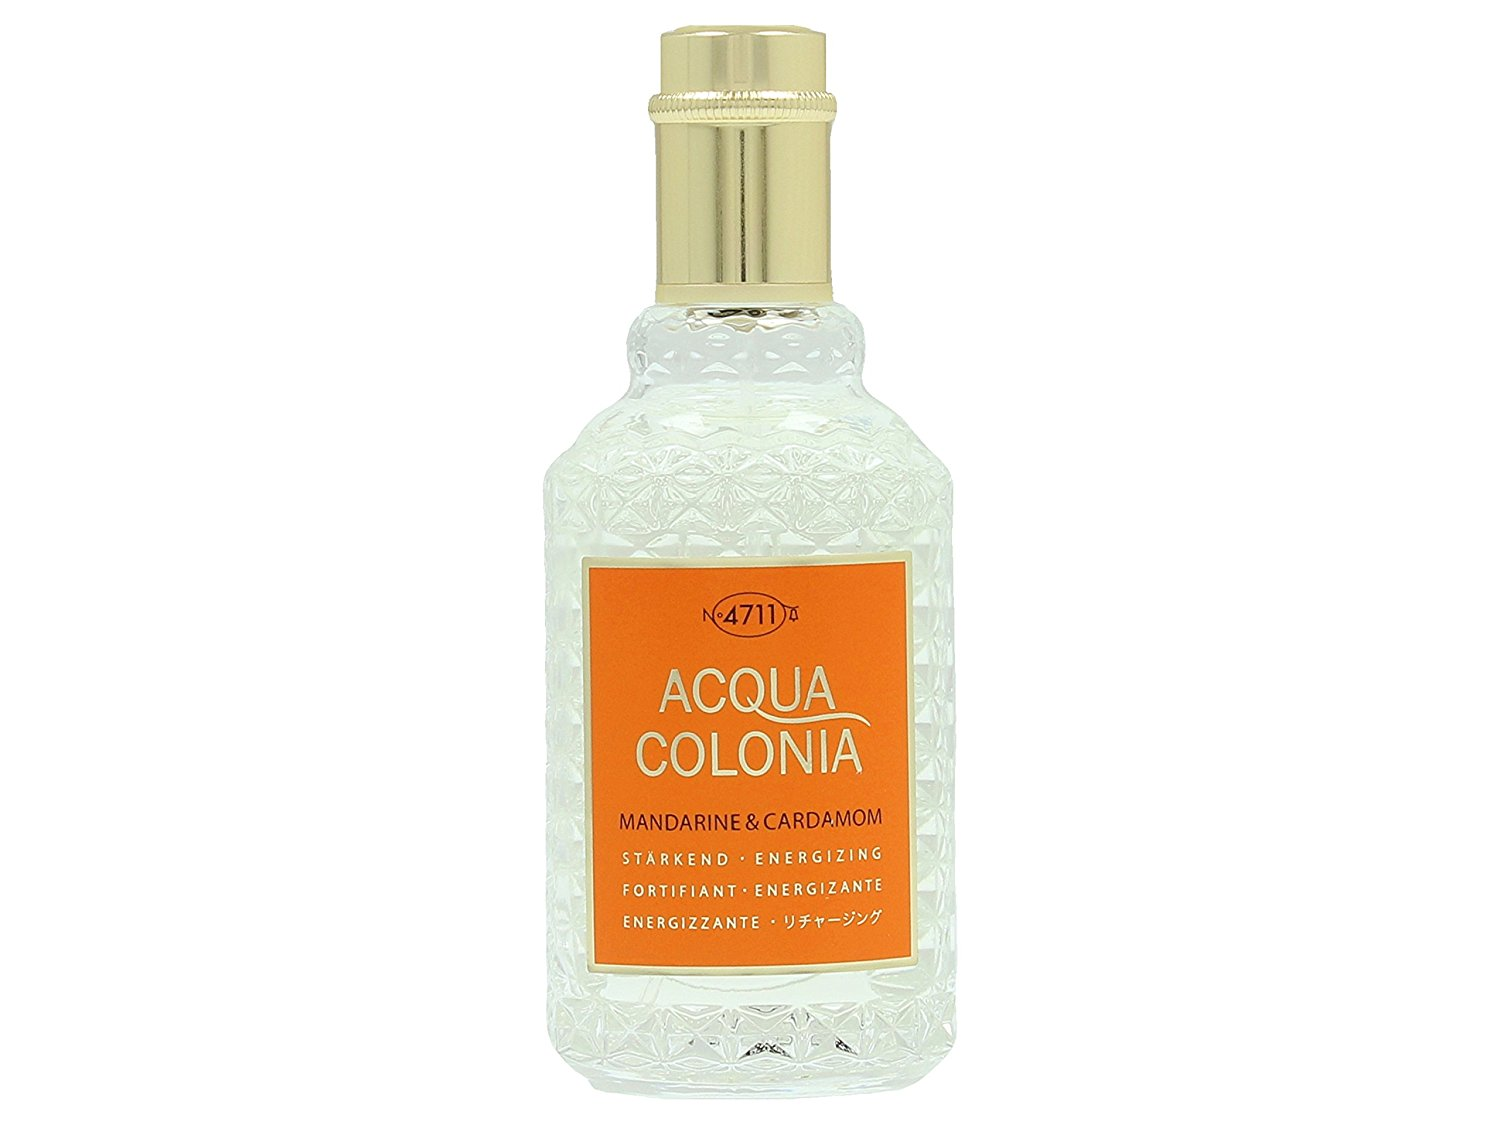 4711 Acqua Colonia Mandarine and Cardamom Eau de Cologne Spray for Women, 1.7 Ounce